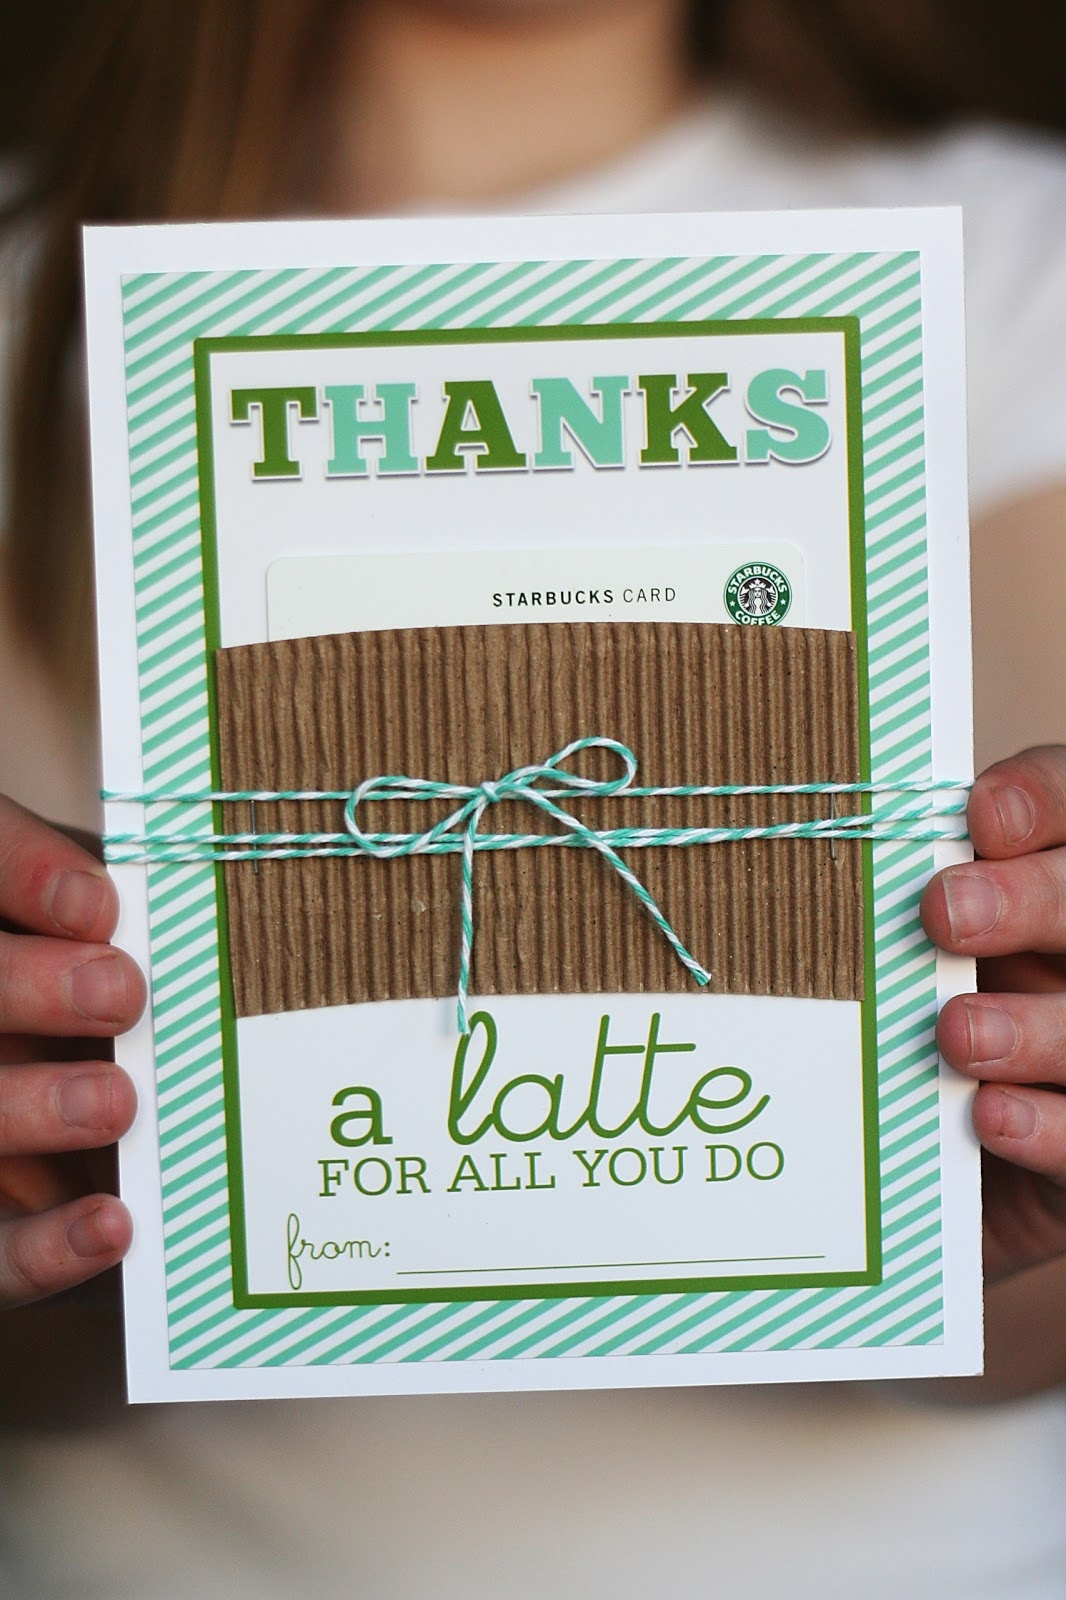 Thanks A Latte Card You Can Print For Free | Eighteen25 - Administrative Professionals Cards Printable Free